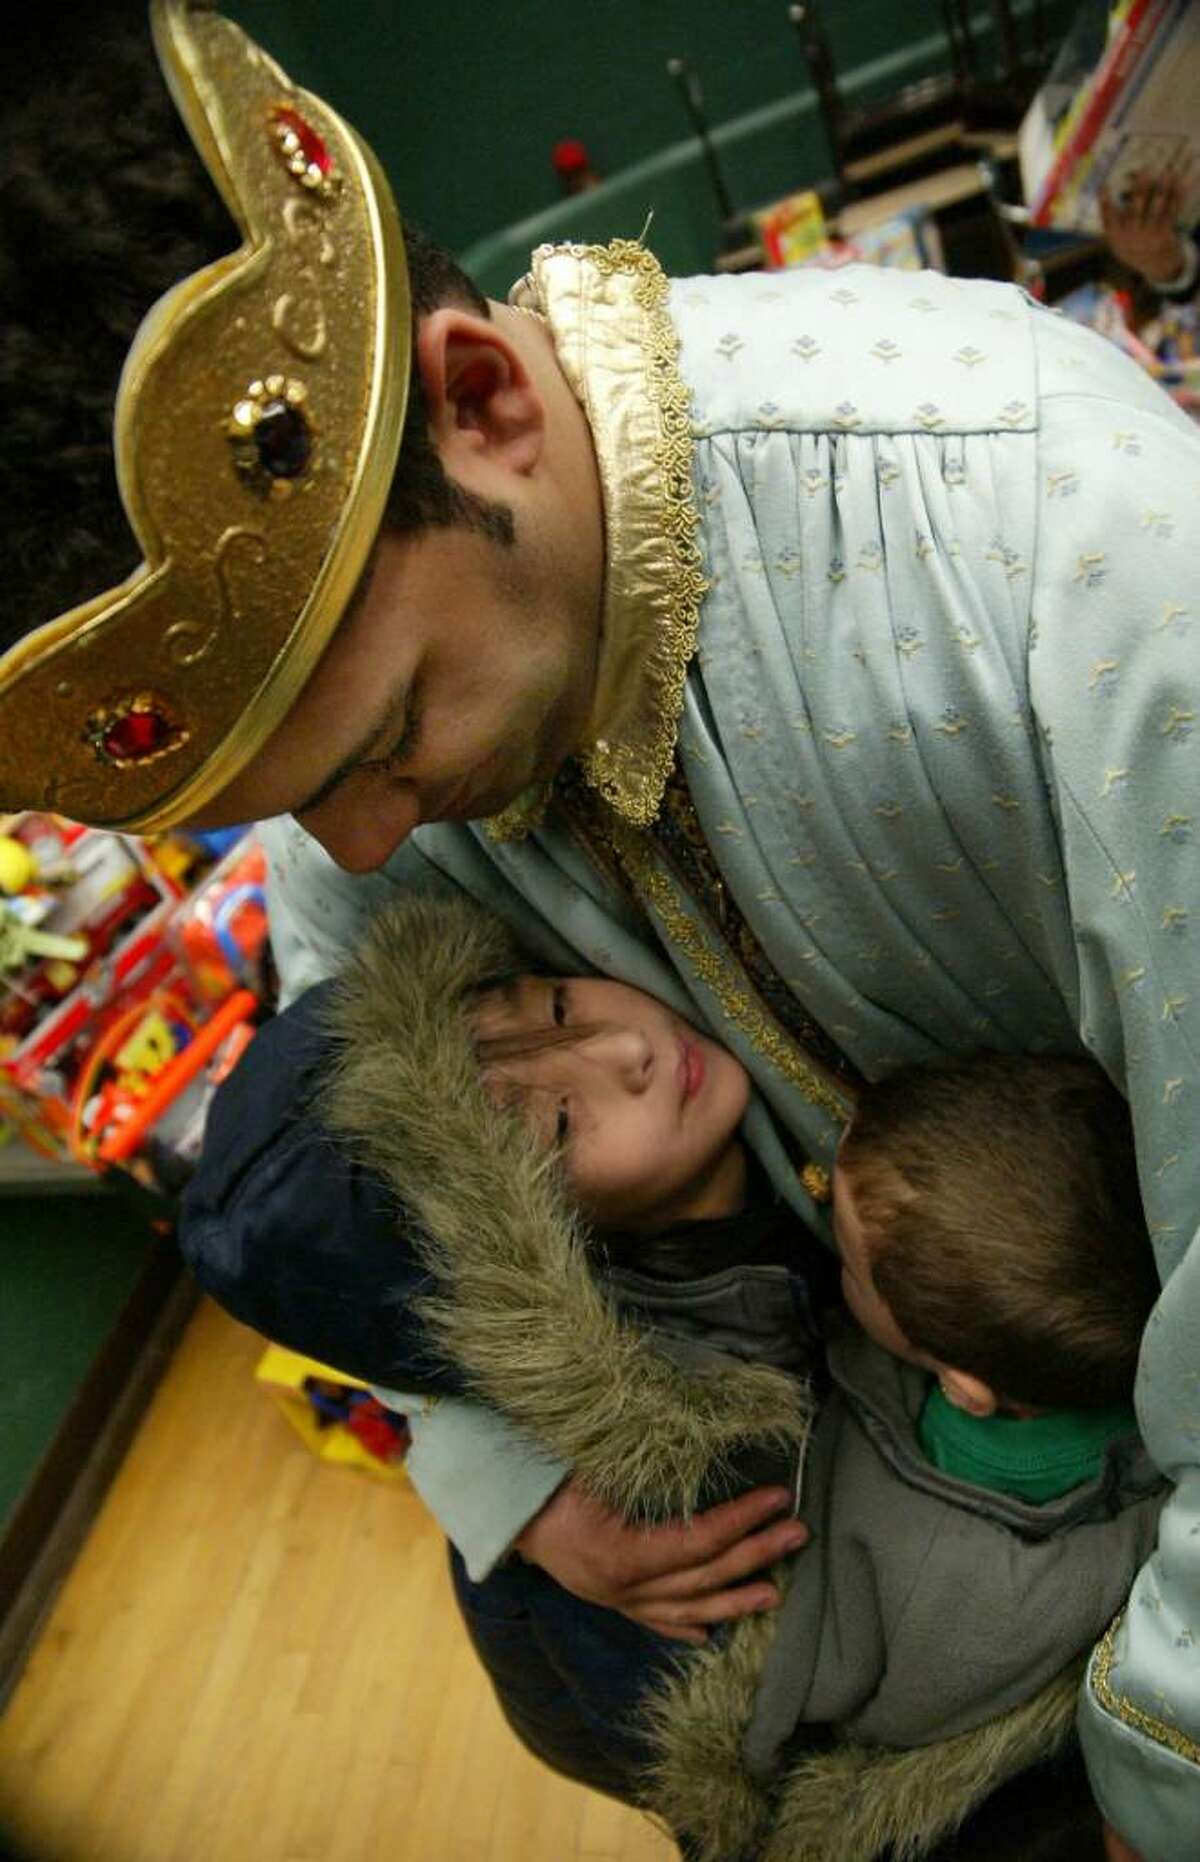 Bridgeport firefighter, Christopher Vega gets a hug from brothers (L-R) Jacob, 7, and Dustin Bonilla, 3, during the Three Kings celebration at Luis Munoz Marin School in Bridgeport. Weednesday, Jan. 6, 2010.